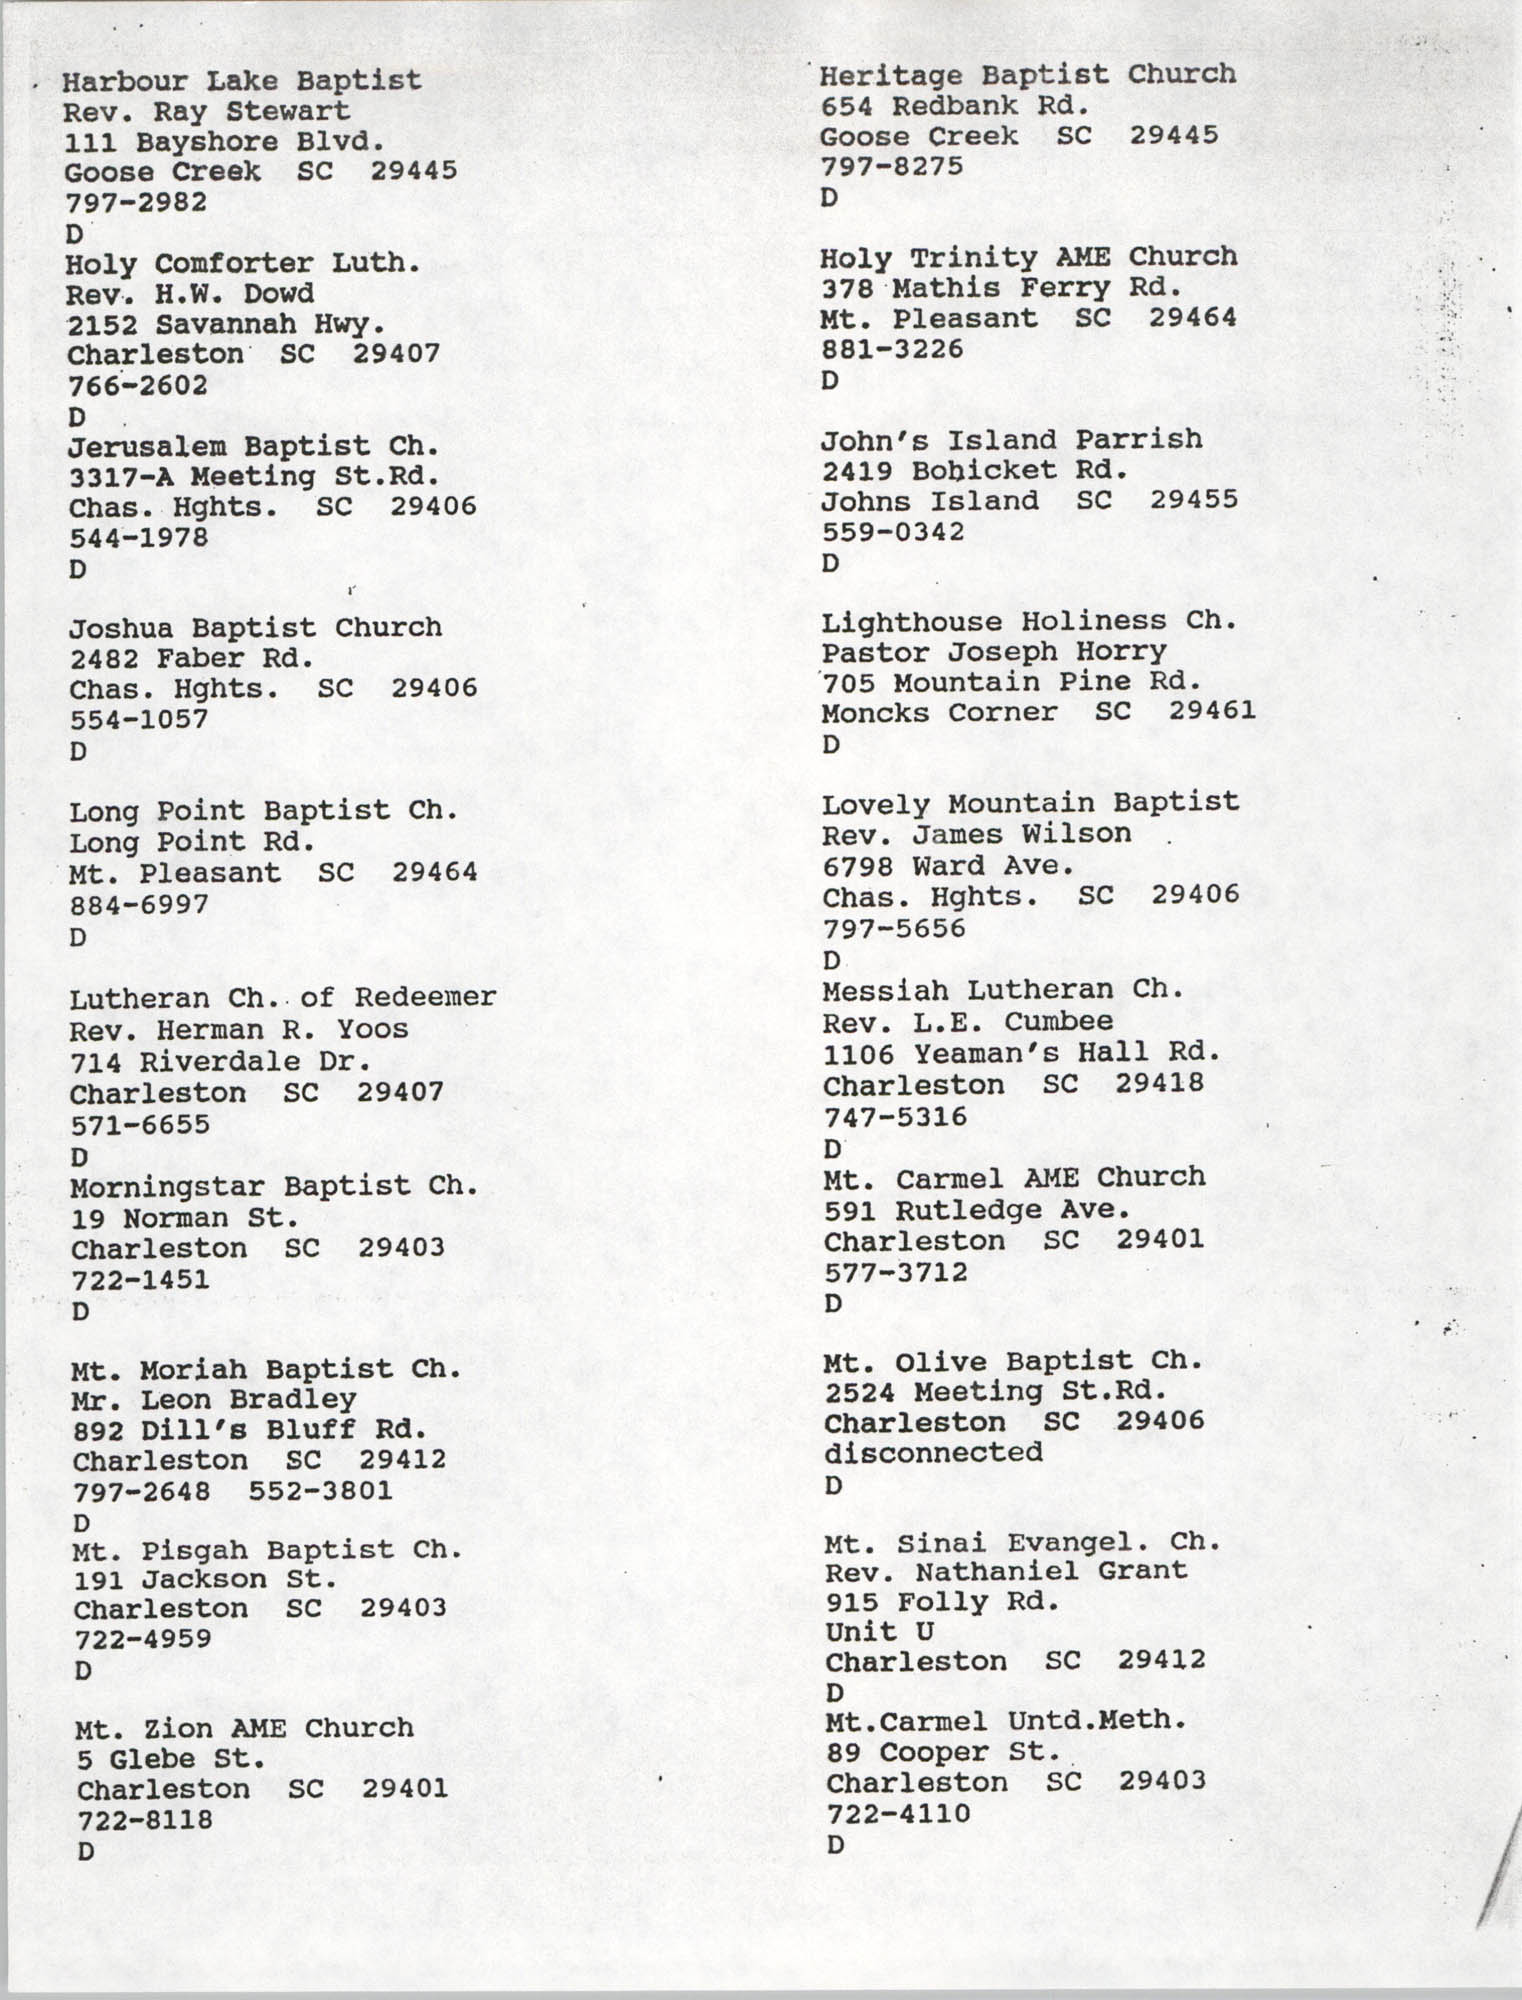 Church Contact List, Charleston Chapter of the NAACP, Page 21